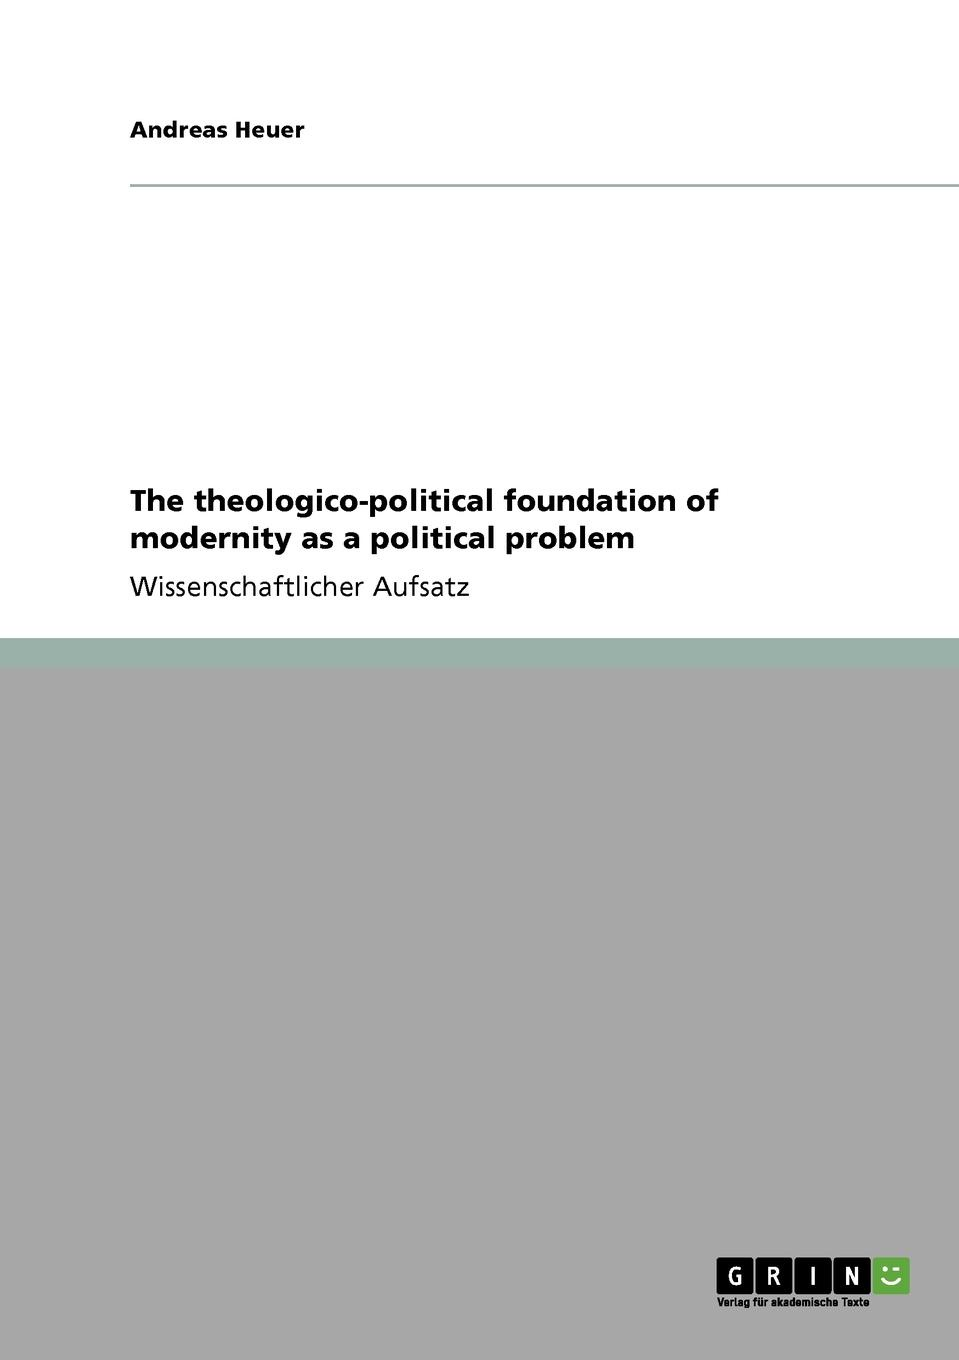 Andreas Heuer The theologico-political foundation of modernity as a political problem